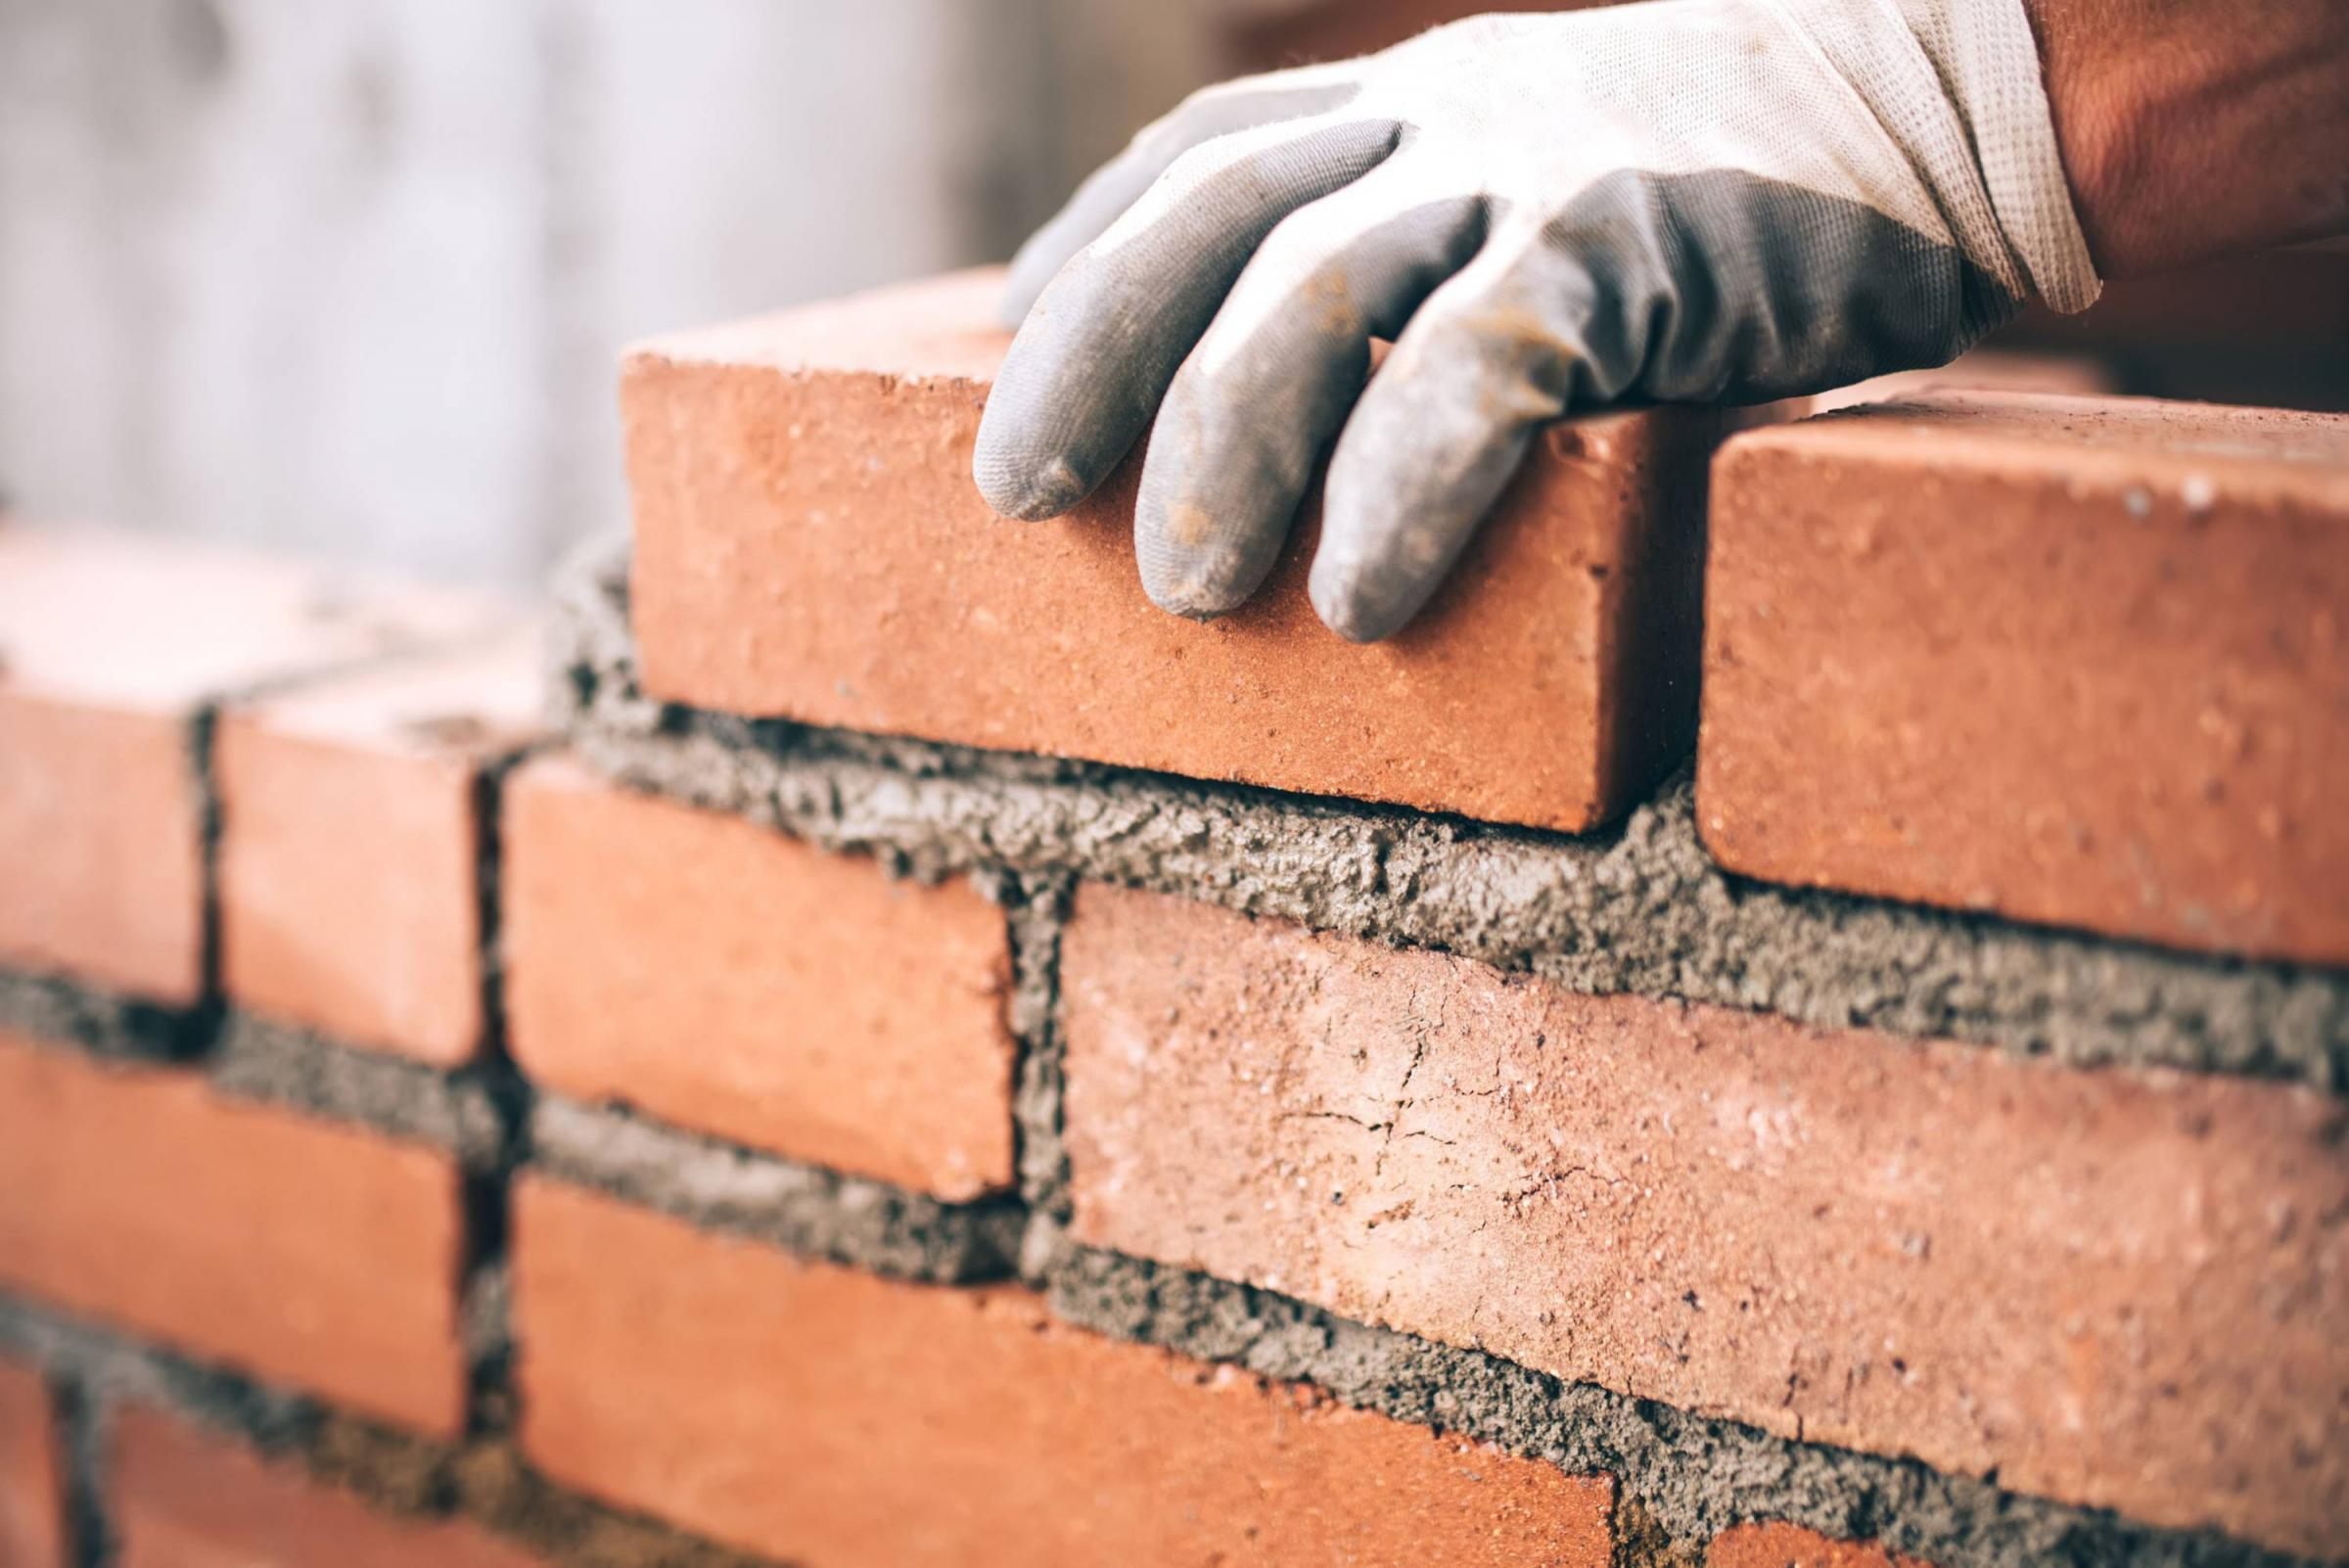 737 new homes to be built in Cheshire West and Chester - The Chester Standard